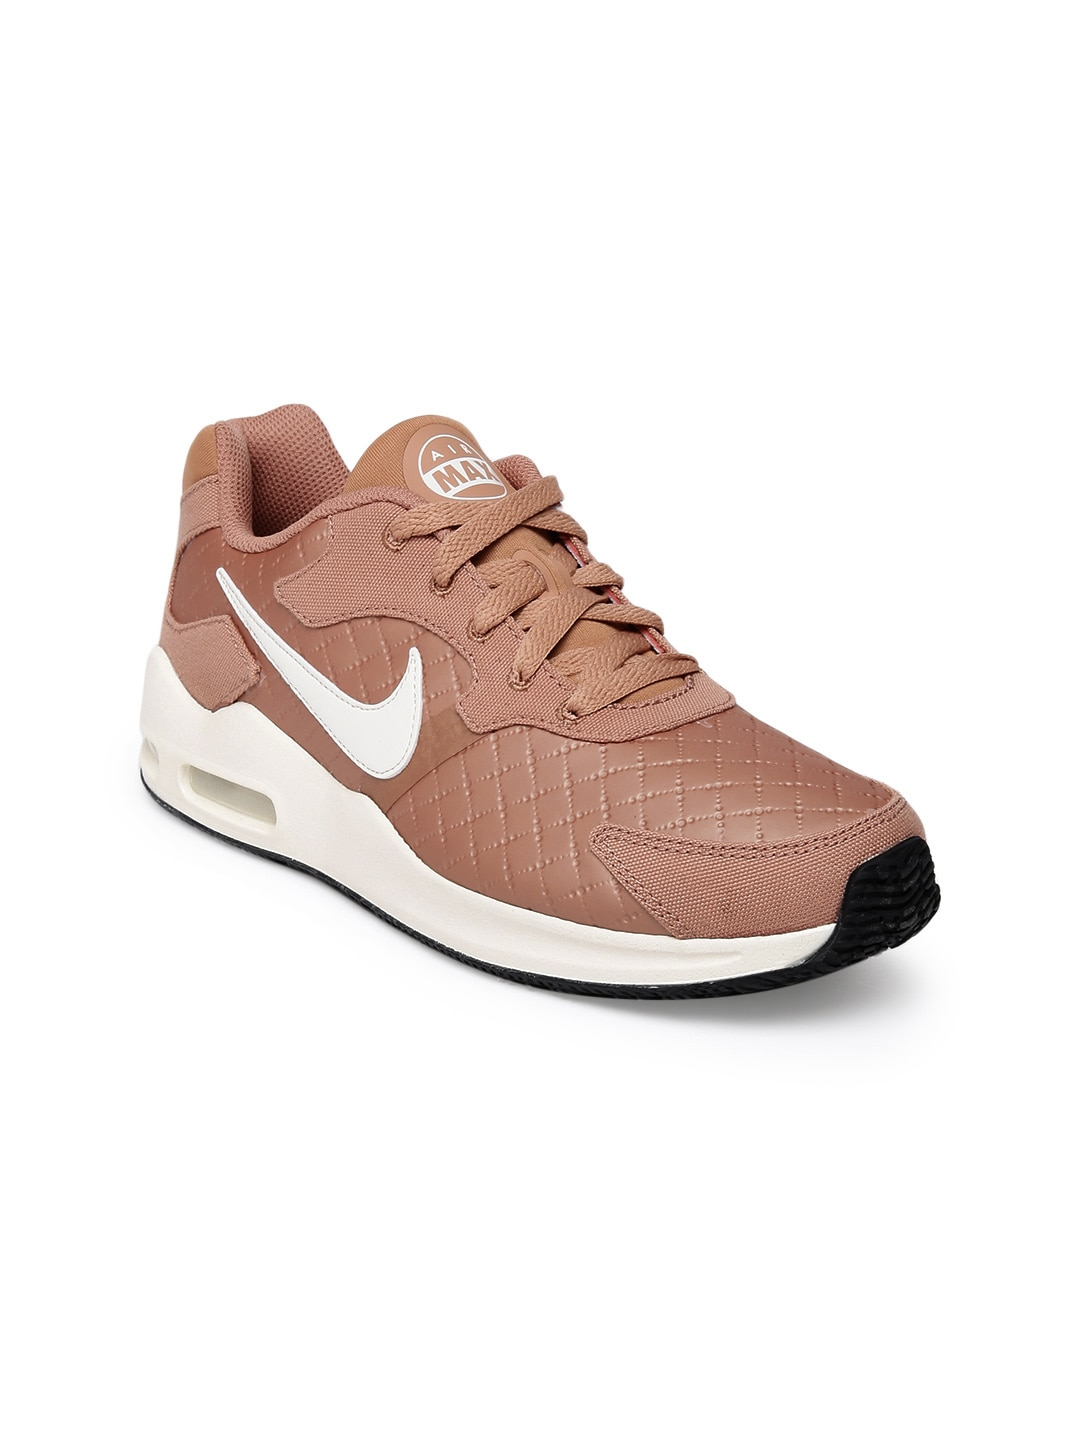 sports shoes b776f 36603 Nike Saee - Buy Nike Saee online in India